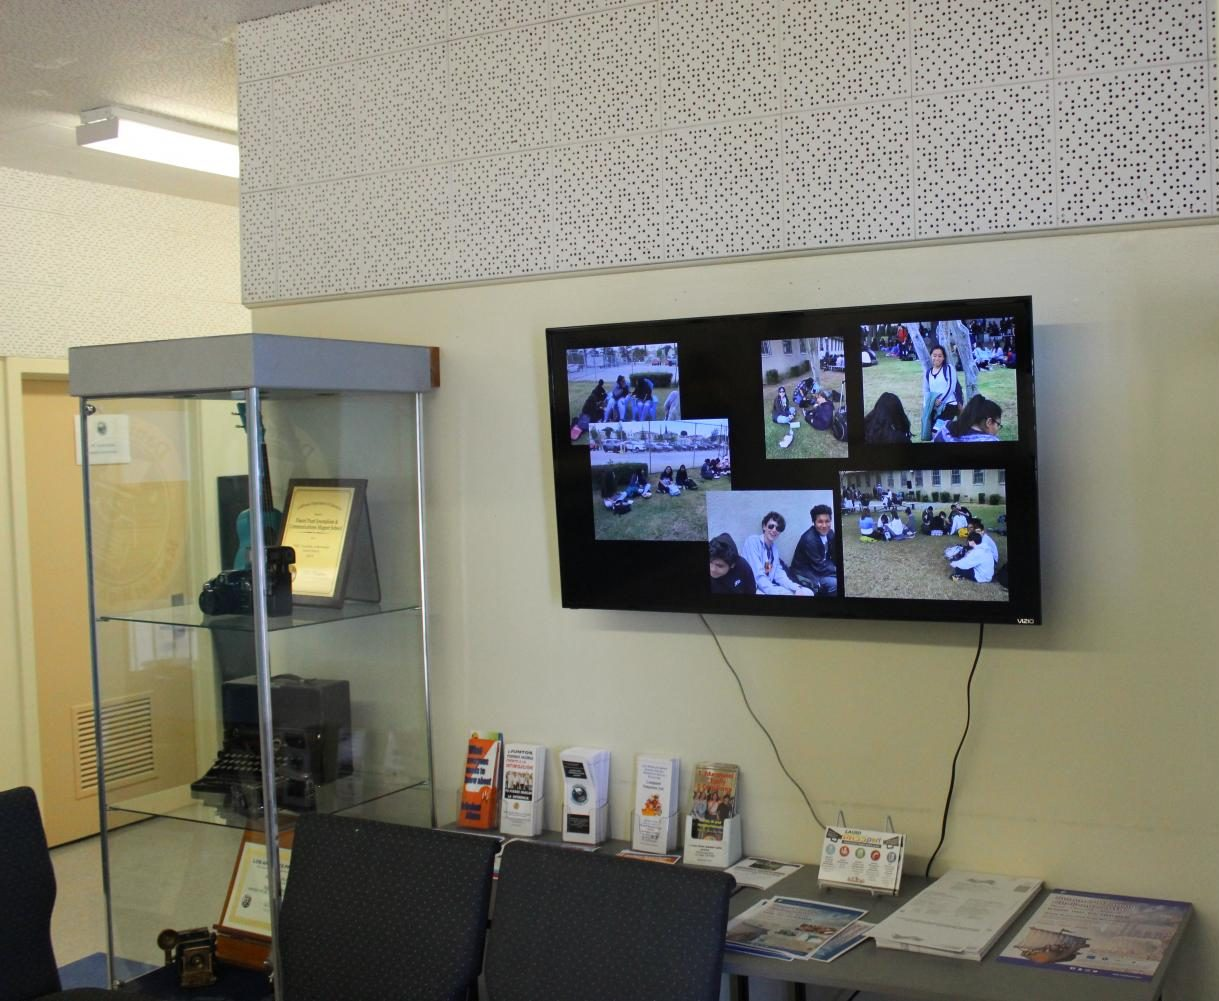 The new television is mounted on the right above the waiting area in the main office.